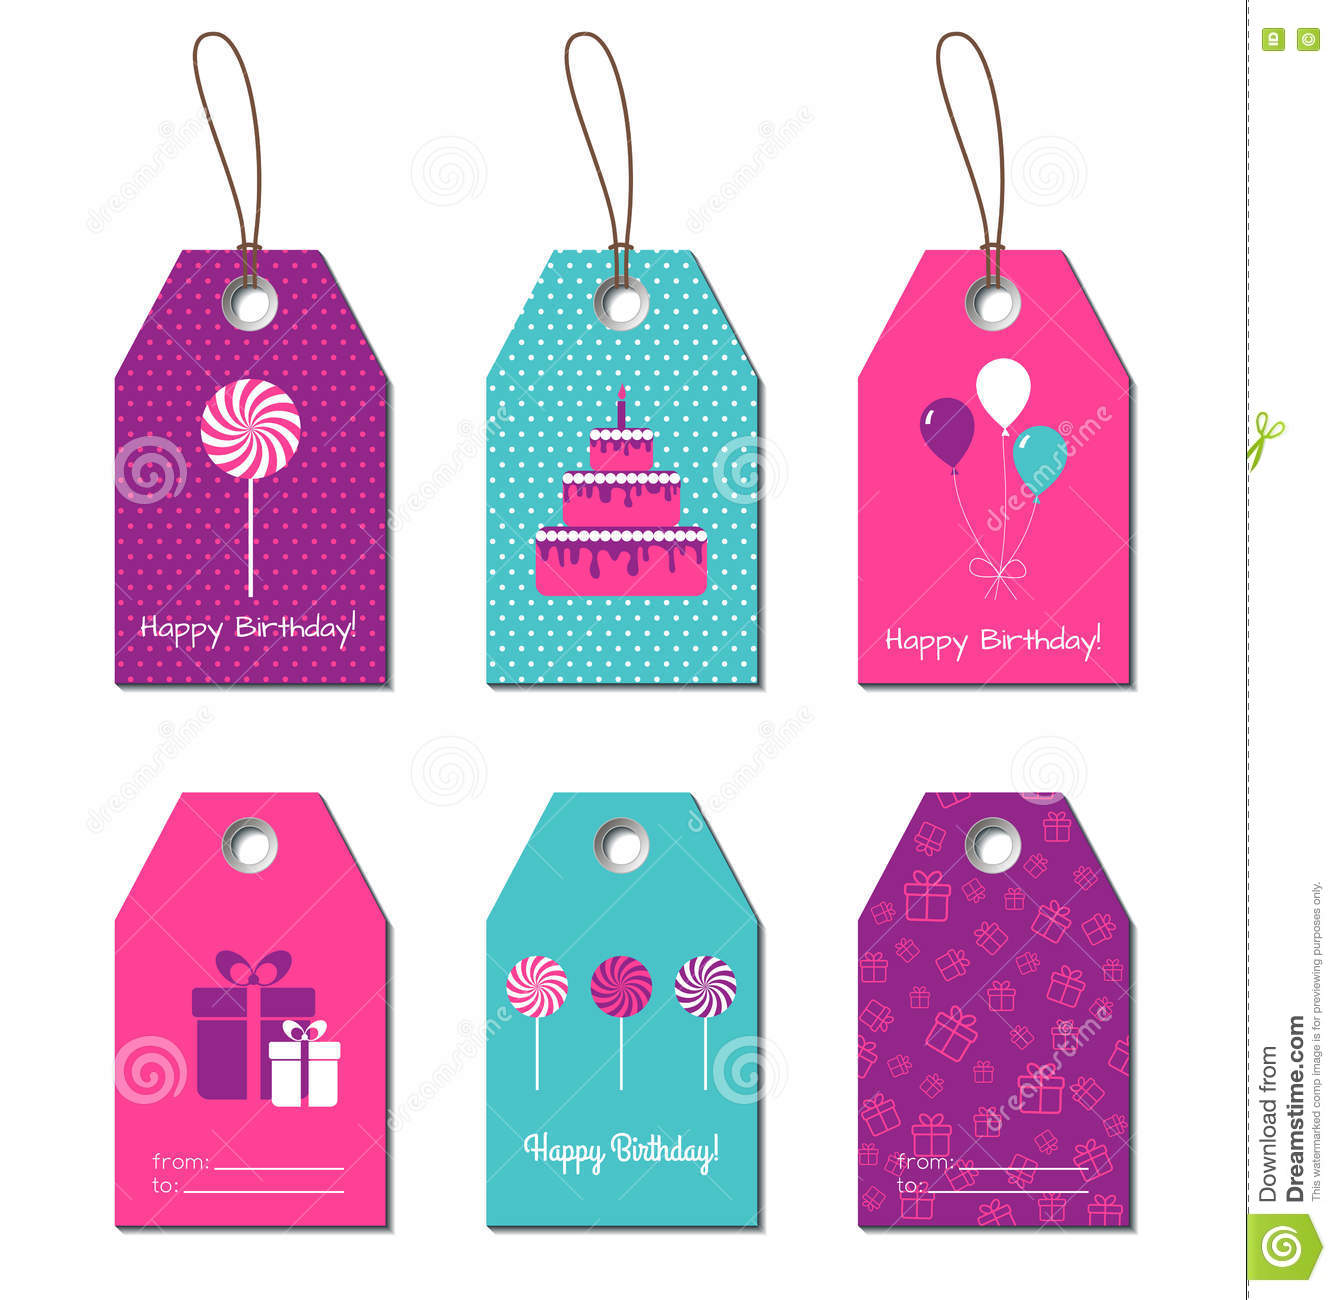 happy birthday gift tag template ; happy-birthday-gift-tags-vector-cards-labels-design-78906600